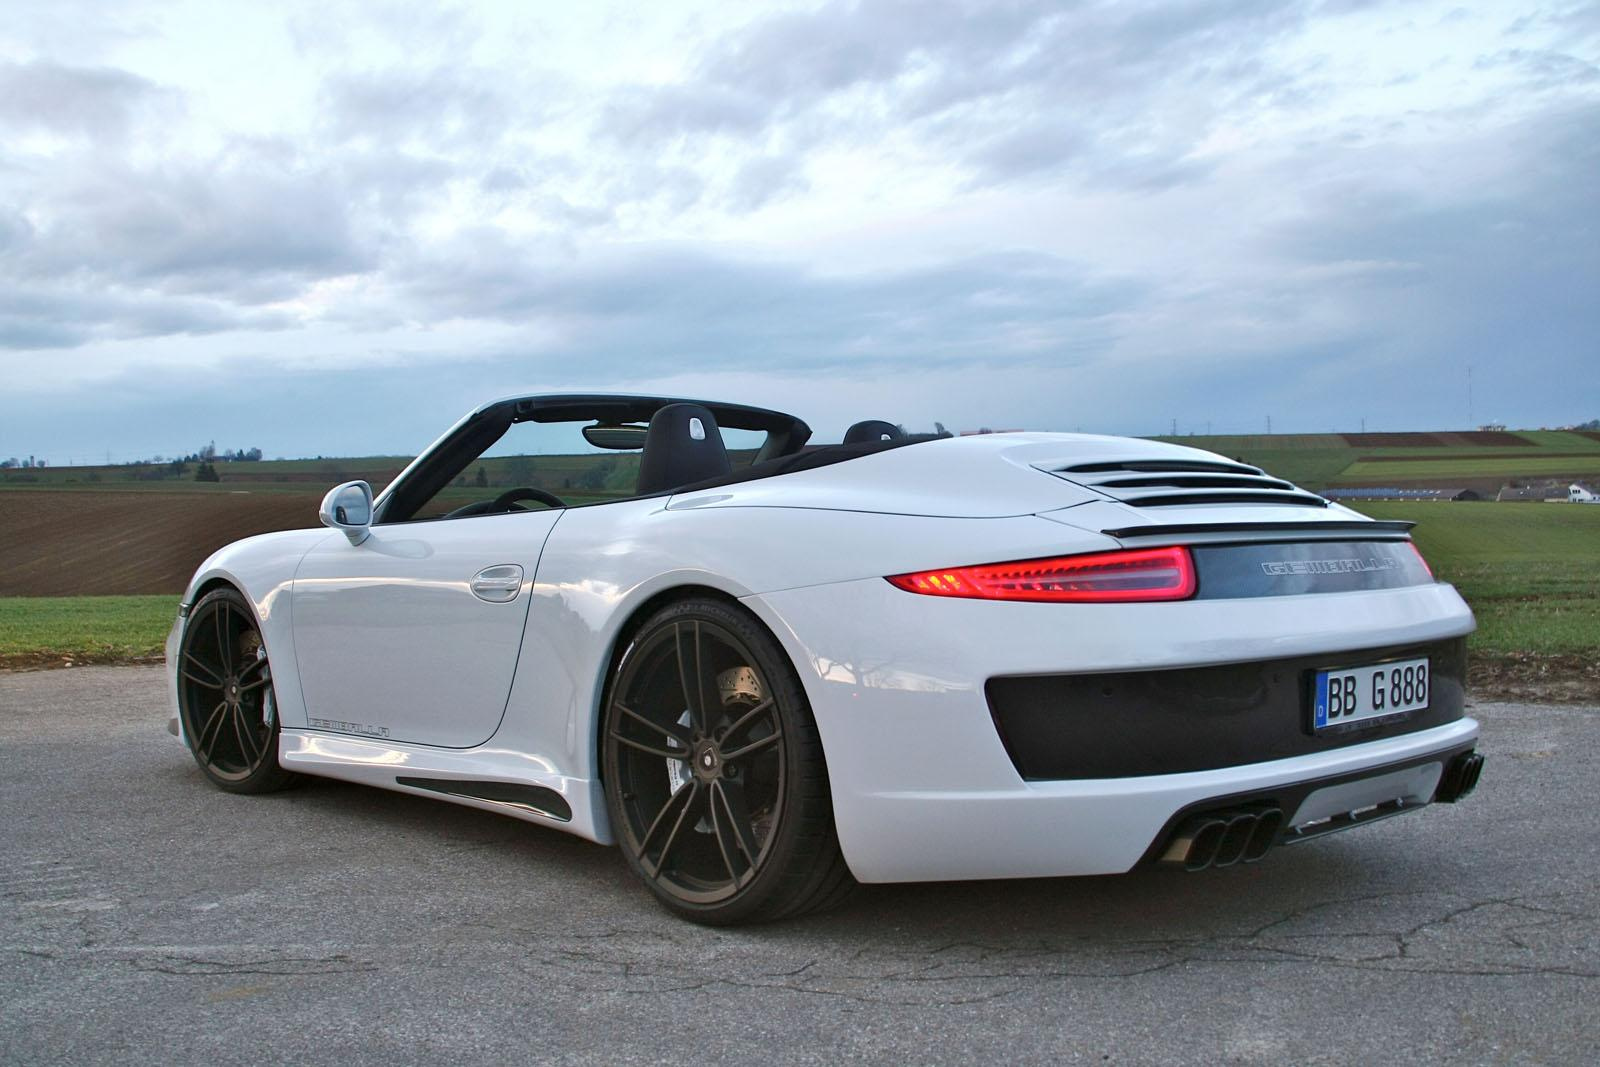 Mclaren Kit Car >> Gemballa gives Porsche 911 Carrera S Cabrio cool styling kit | PerformanceDrive